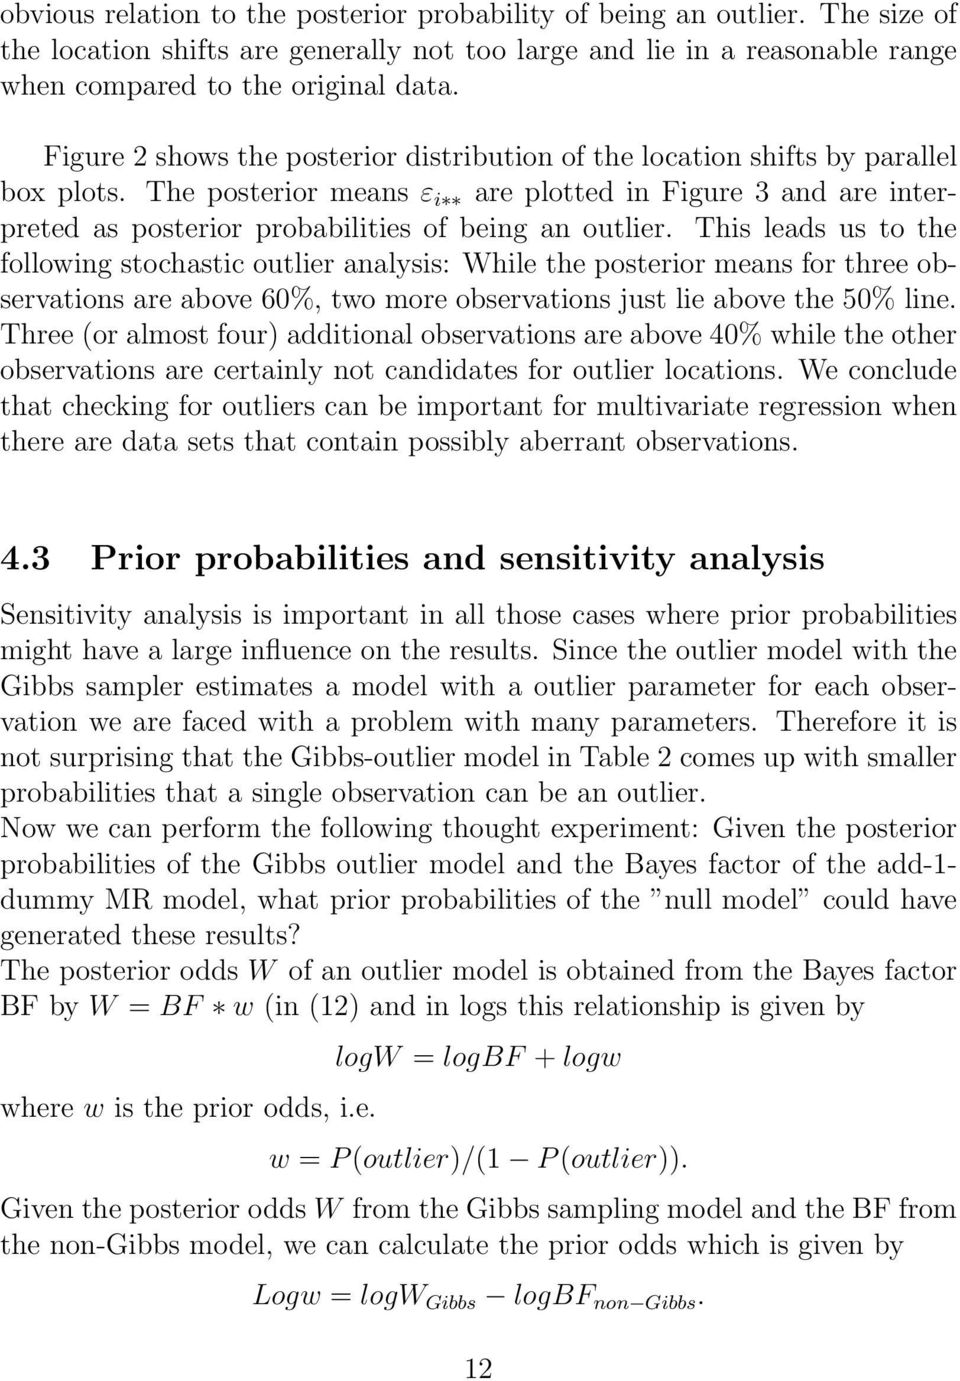 The posterior means ε i are plotted in Figure 3 and are interpreted as posterior probabilities of being an outlier.